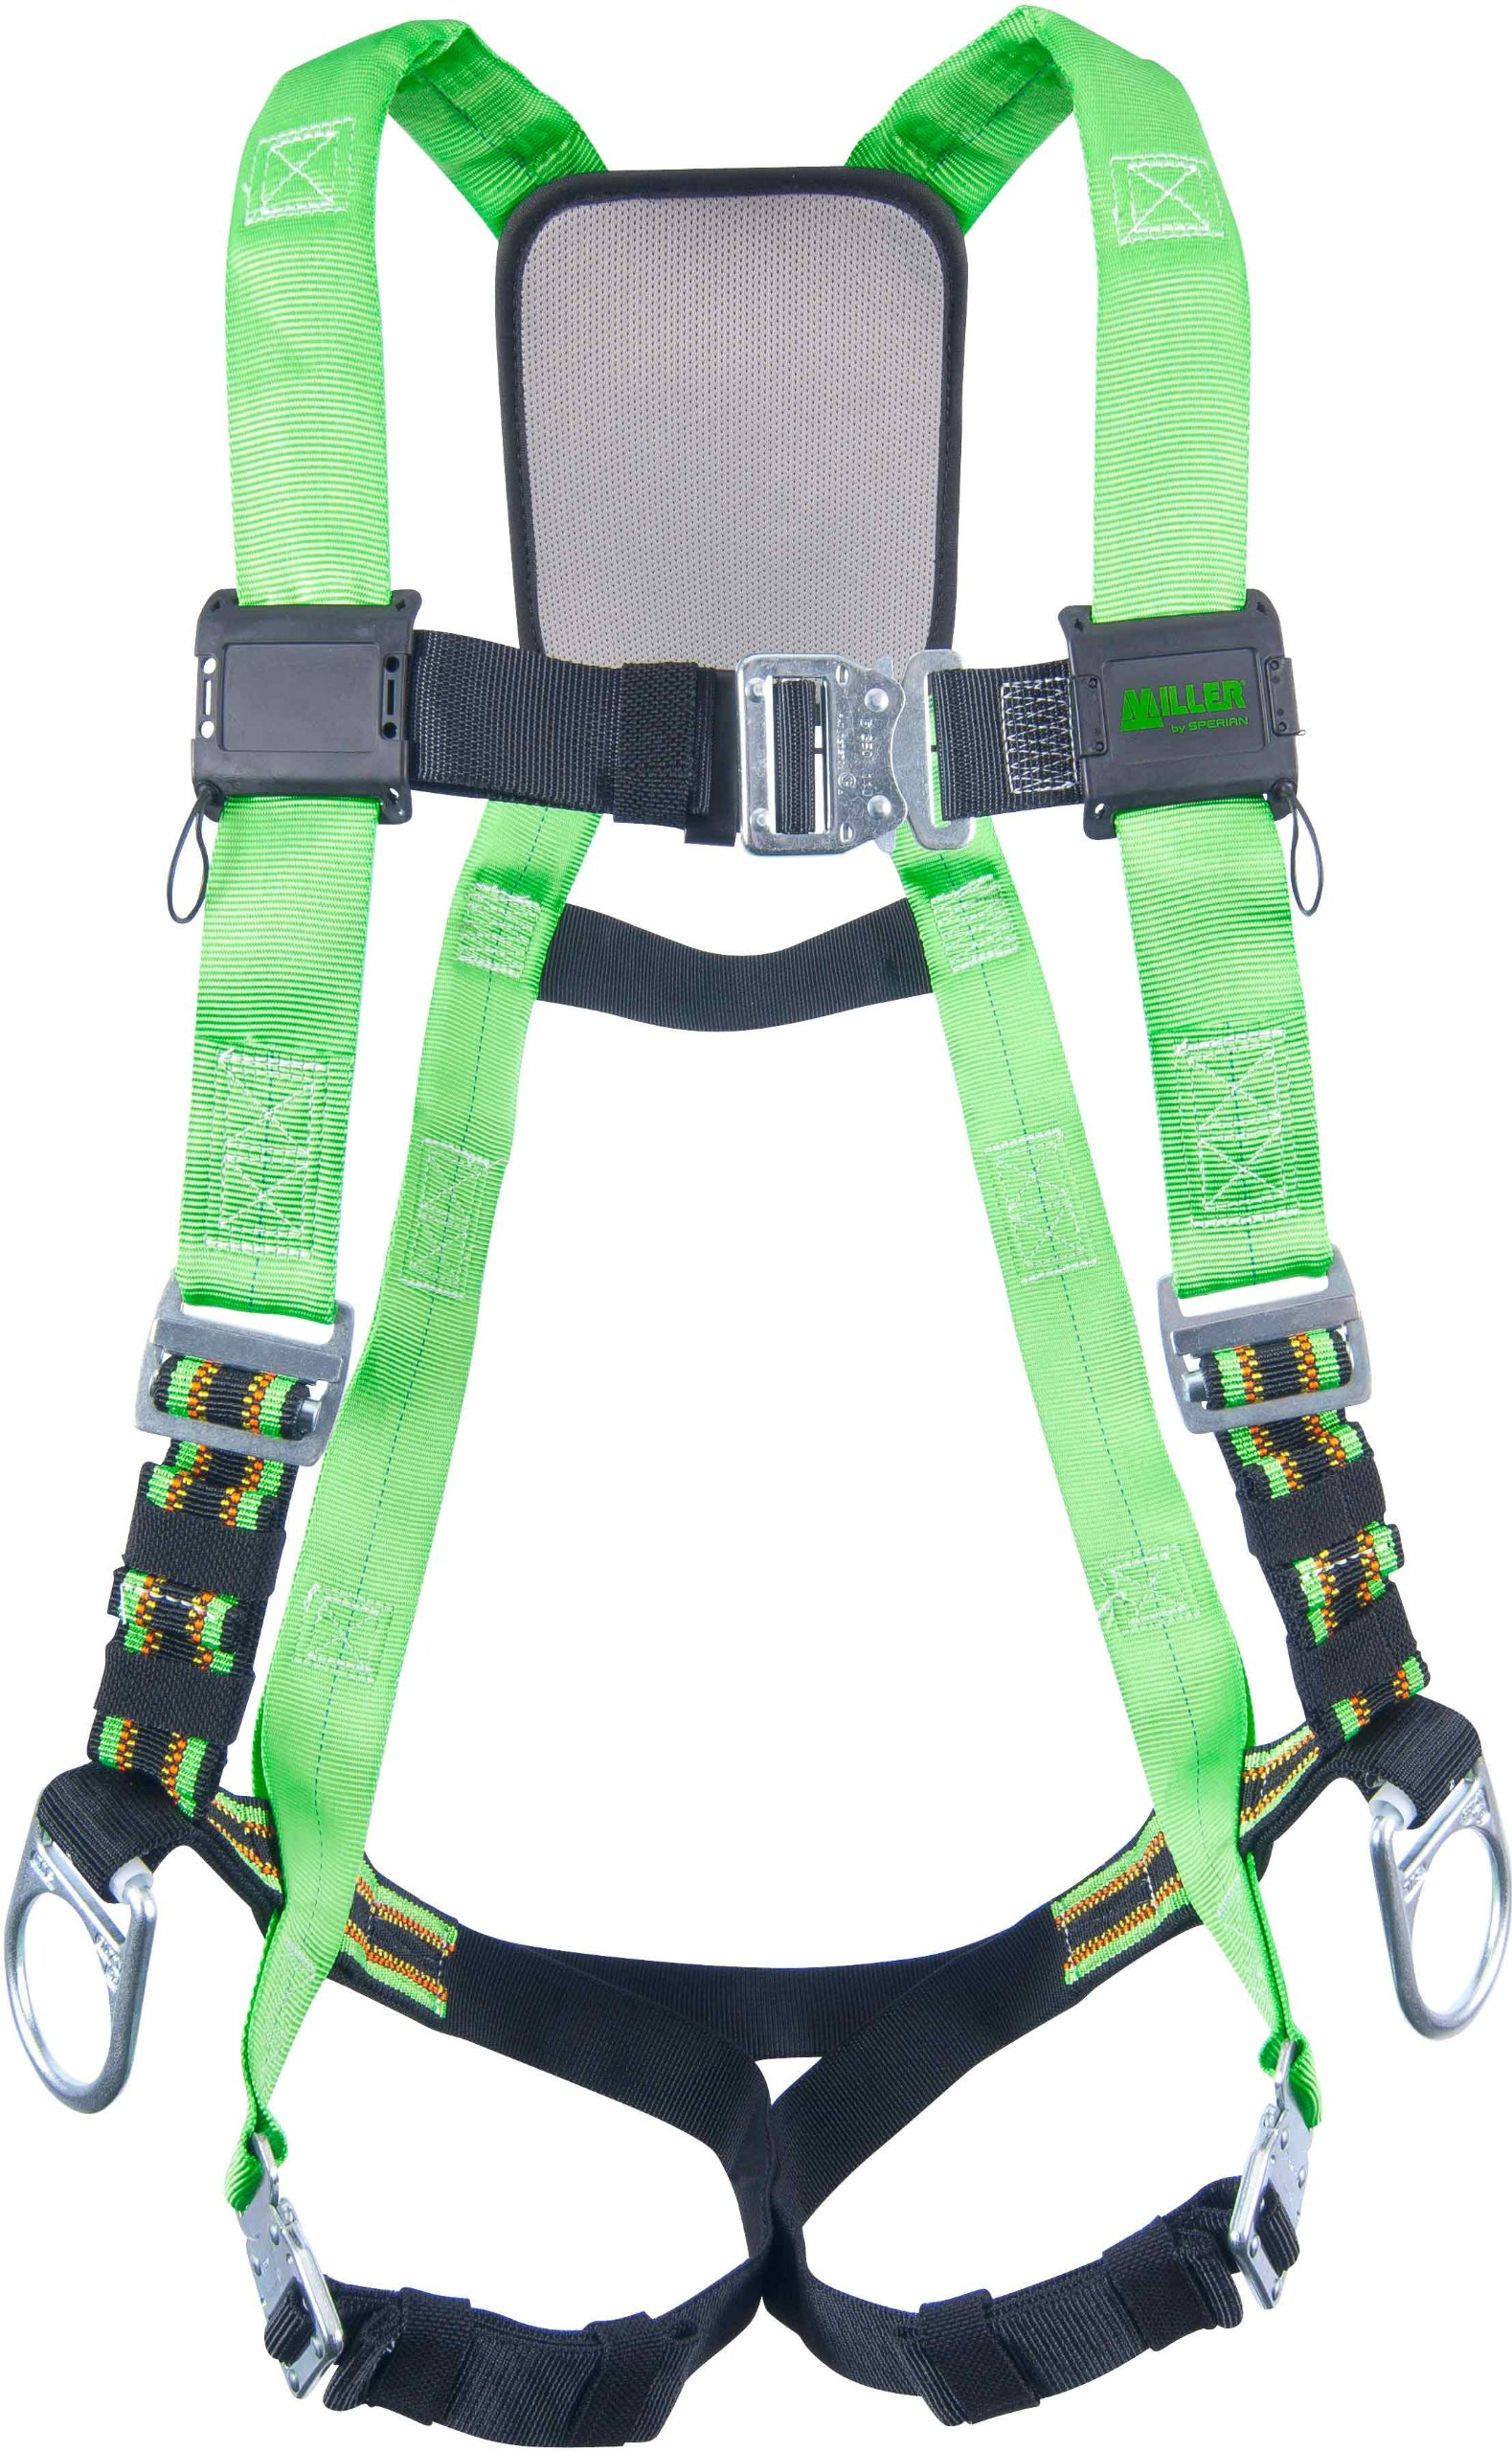 Miller DuraFlex Python Ultra Full-Body Safety Harness with Tubular Webbing & Side D-Rings, Universal Size-Large/XL, 400 lb. Capacity (P950QC-7/UGN) by Honeywell